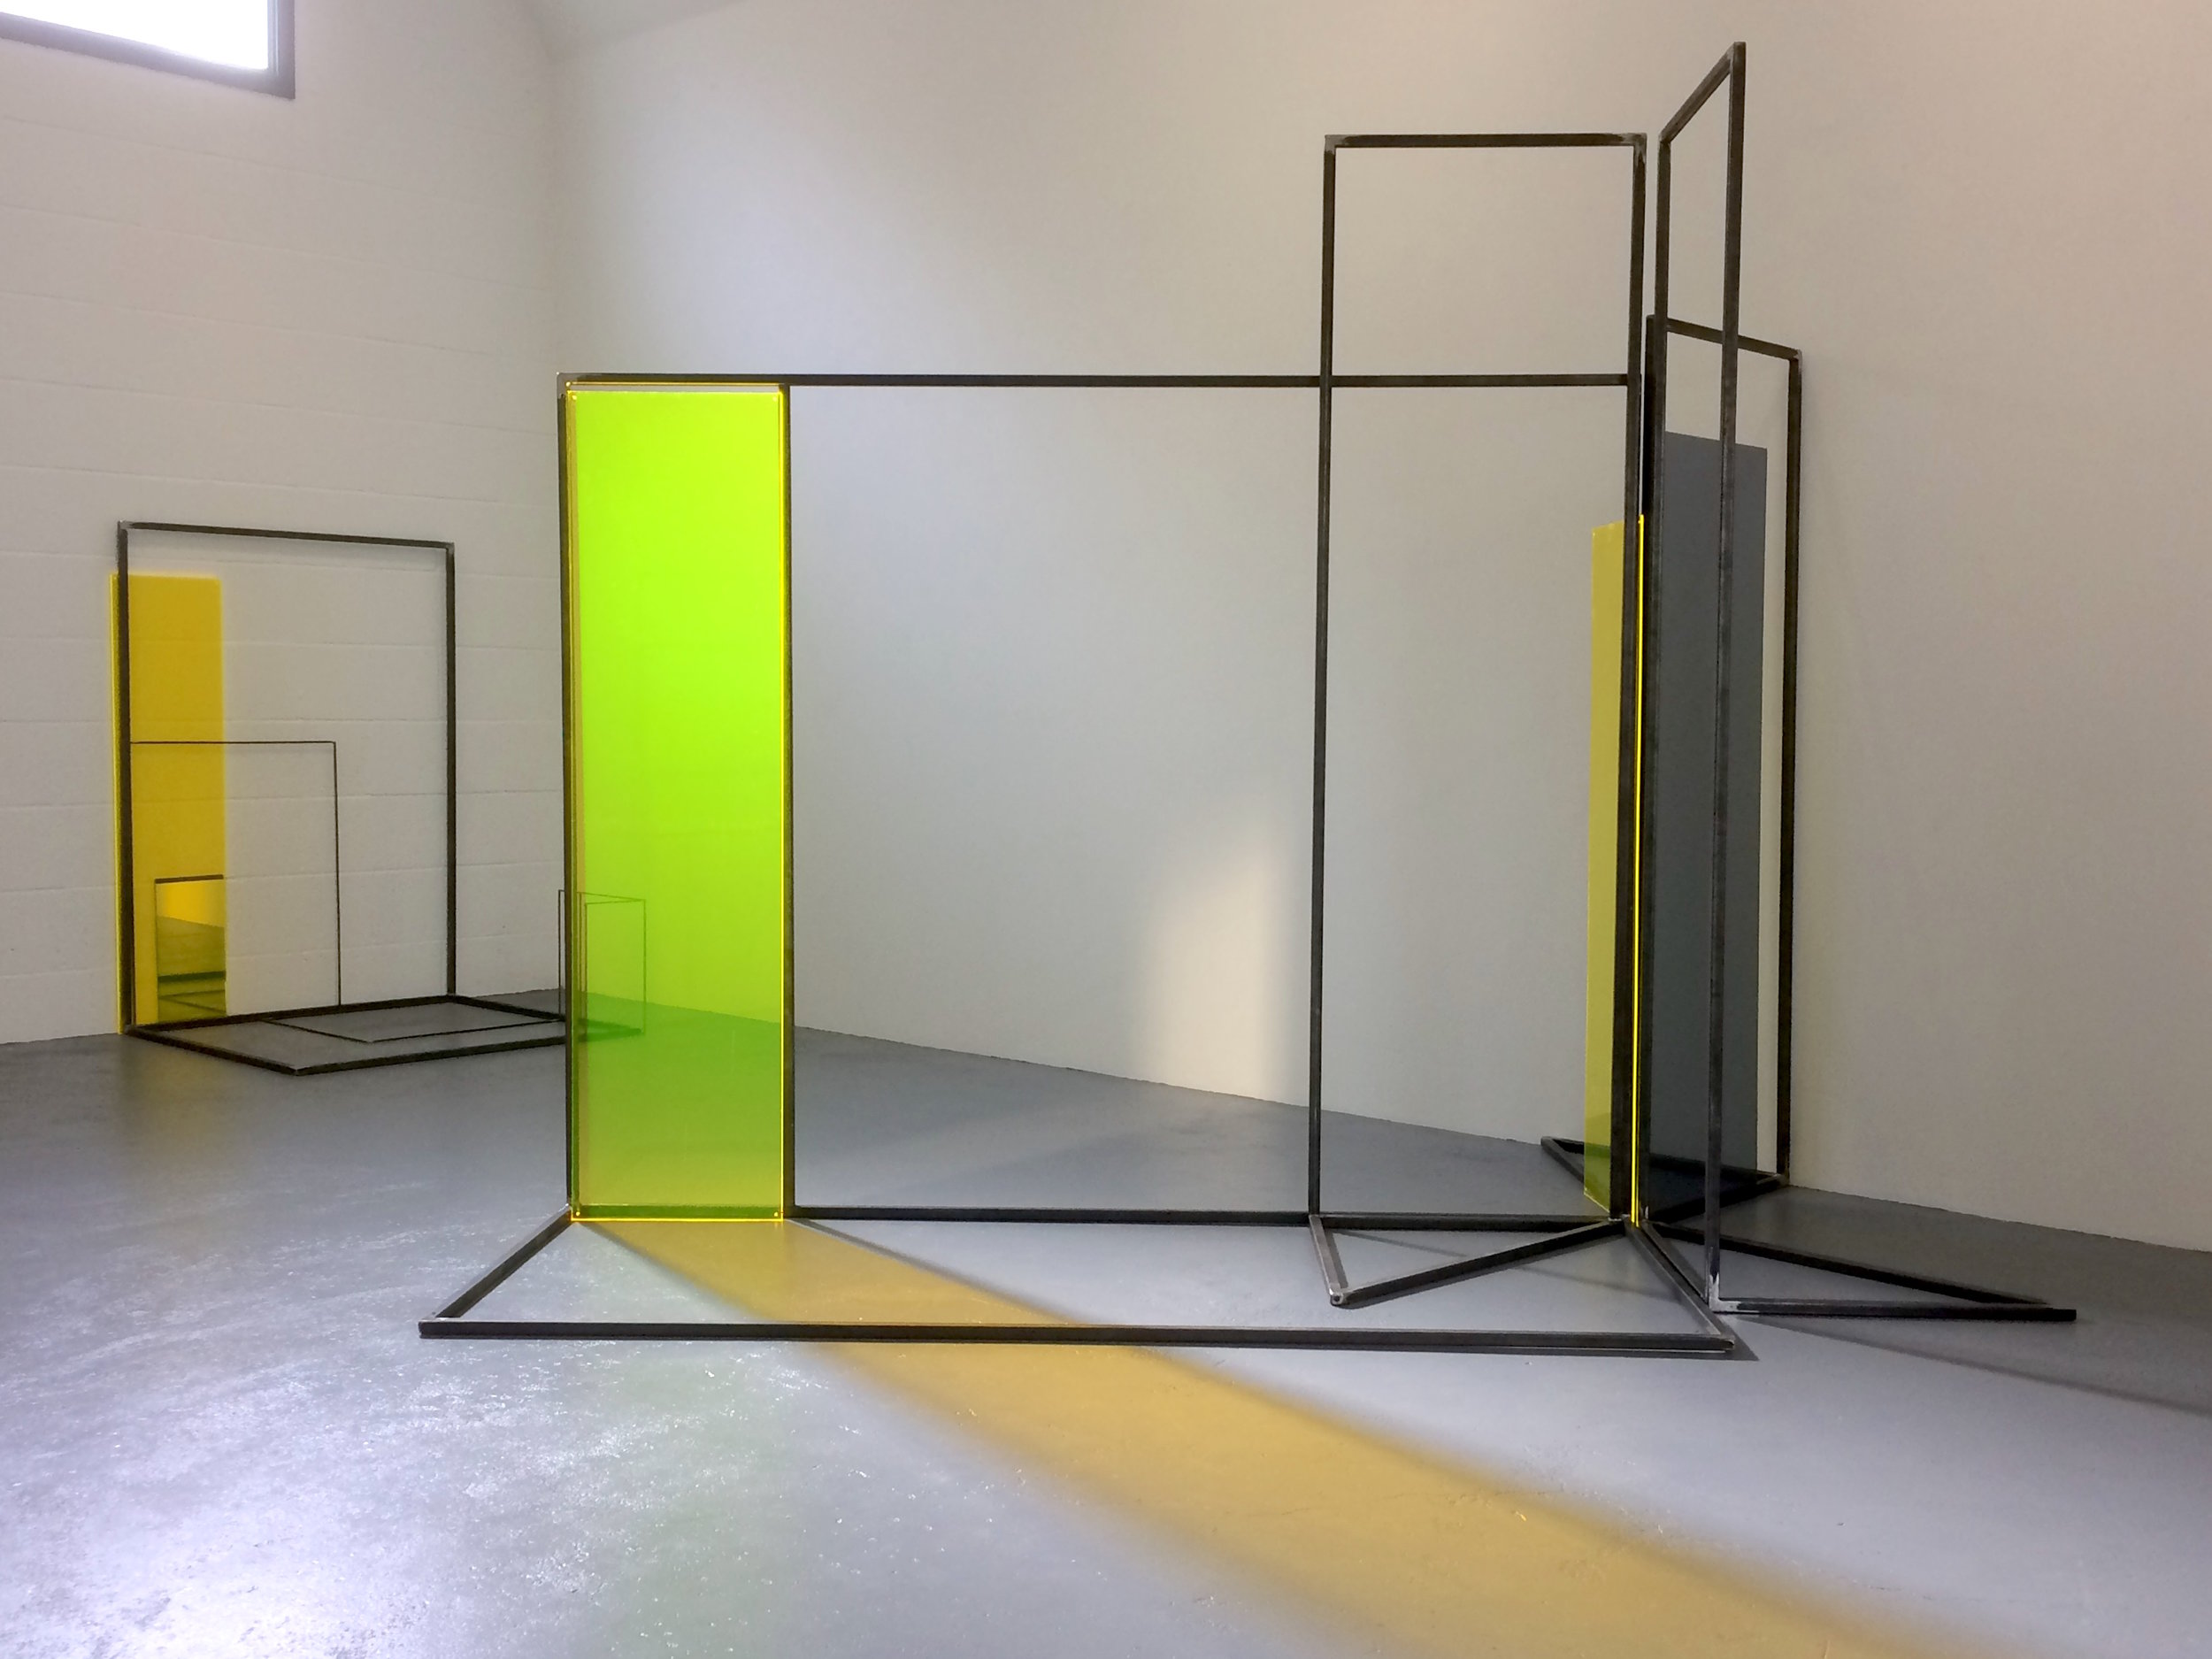 Rosalind Davis.Haus Konstructiv. Steel, Perspex and Mirror installation at no format gallery.2017jpg.jpg